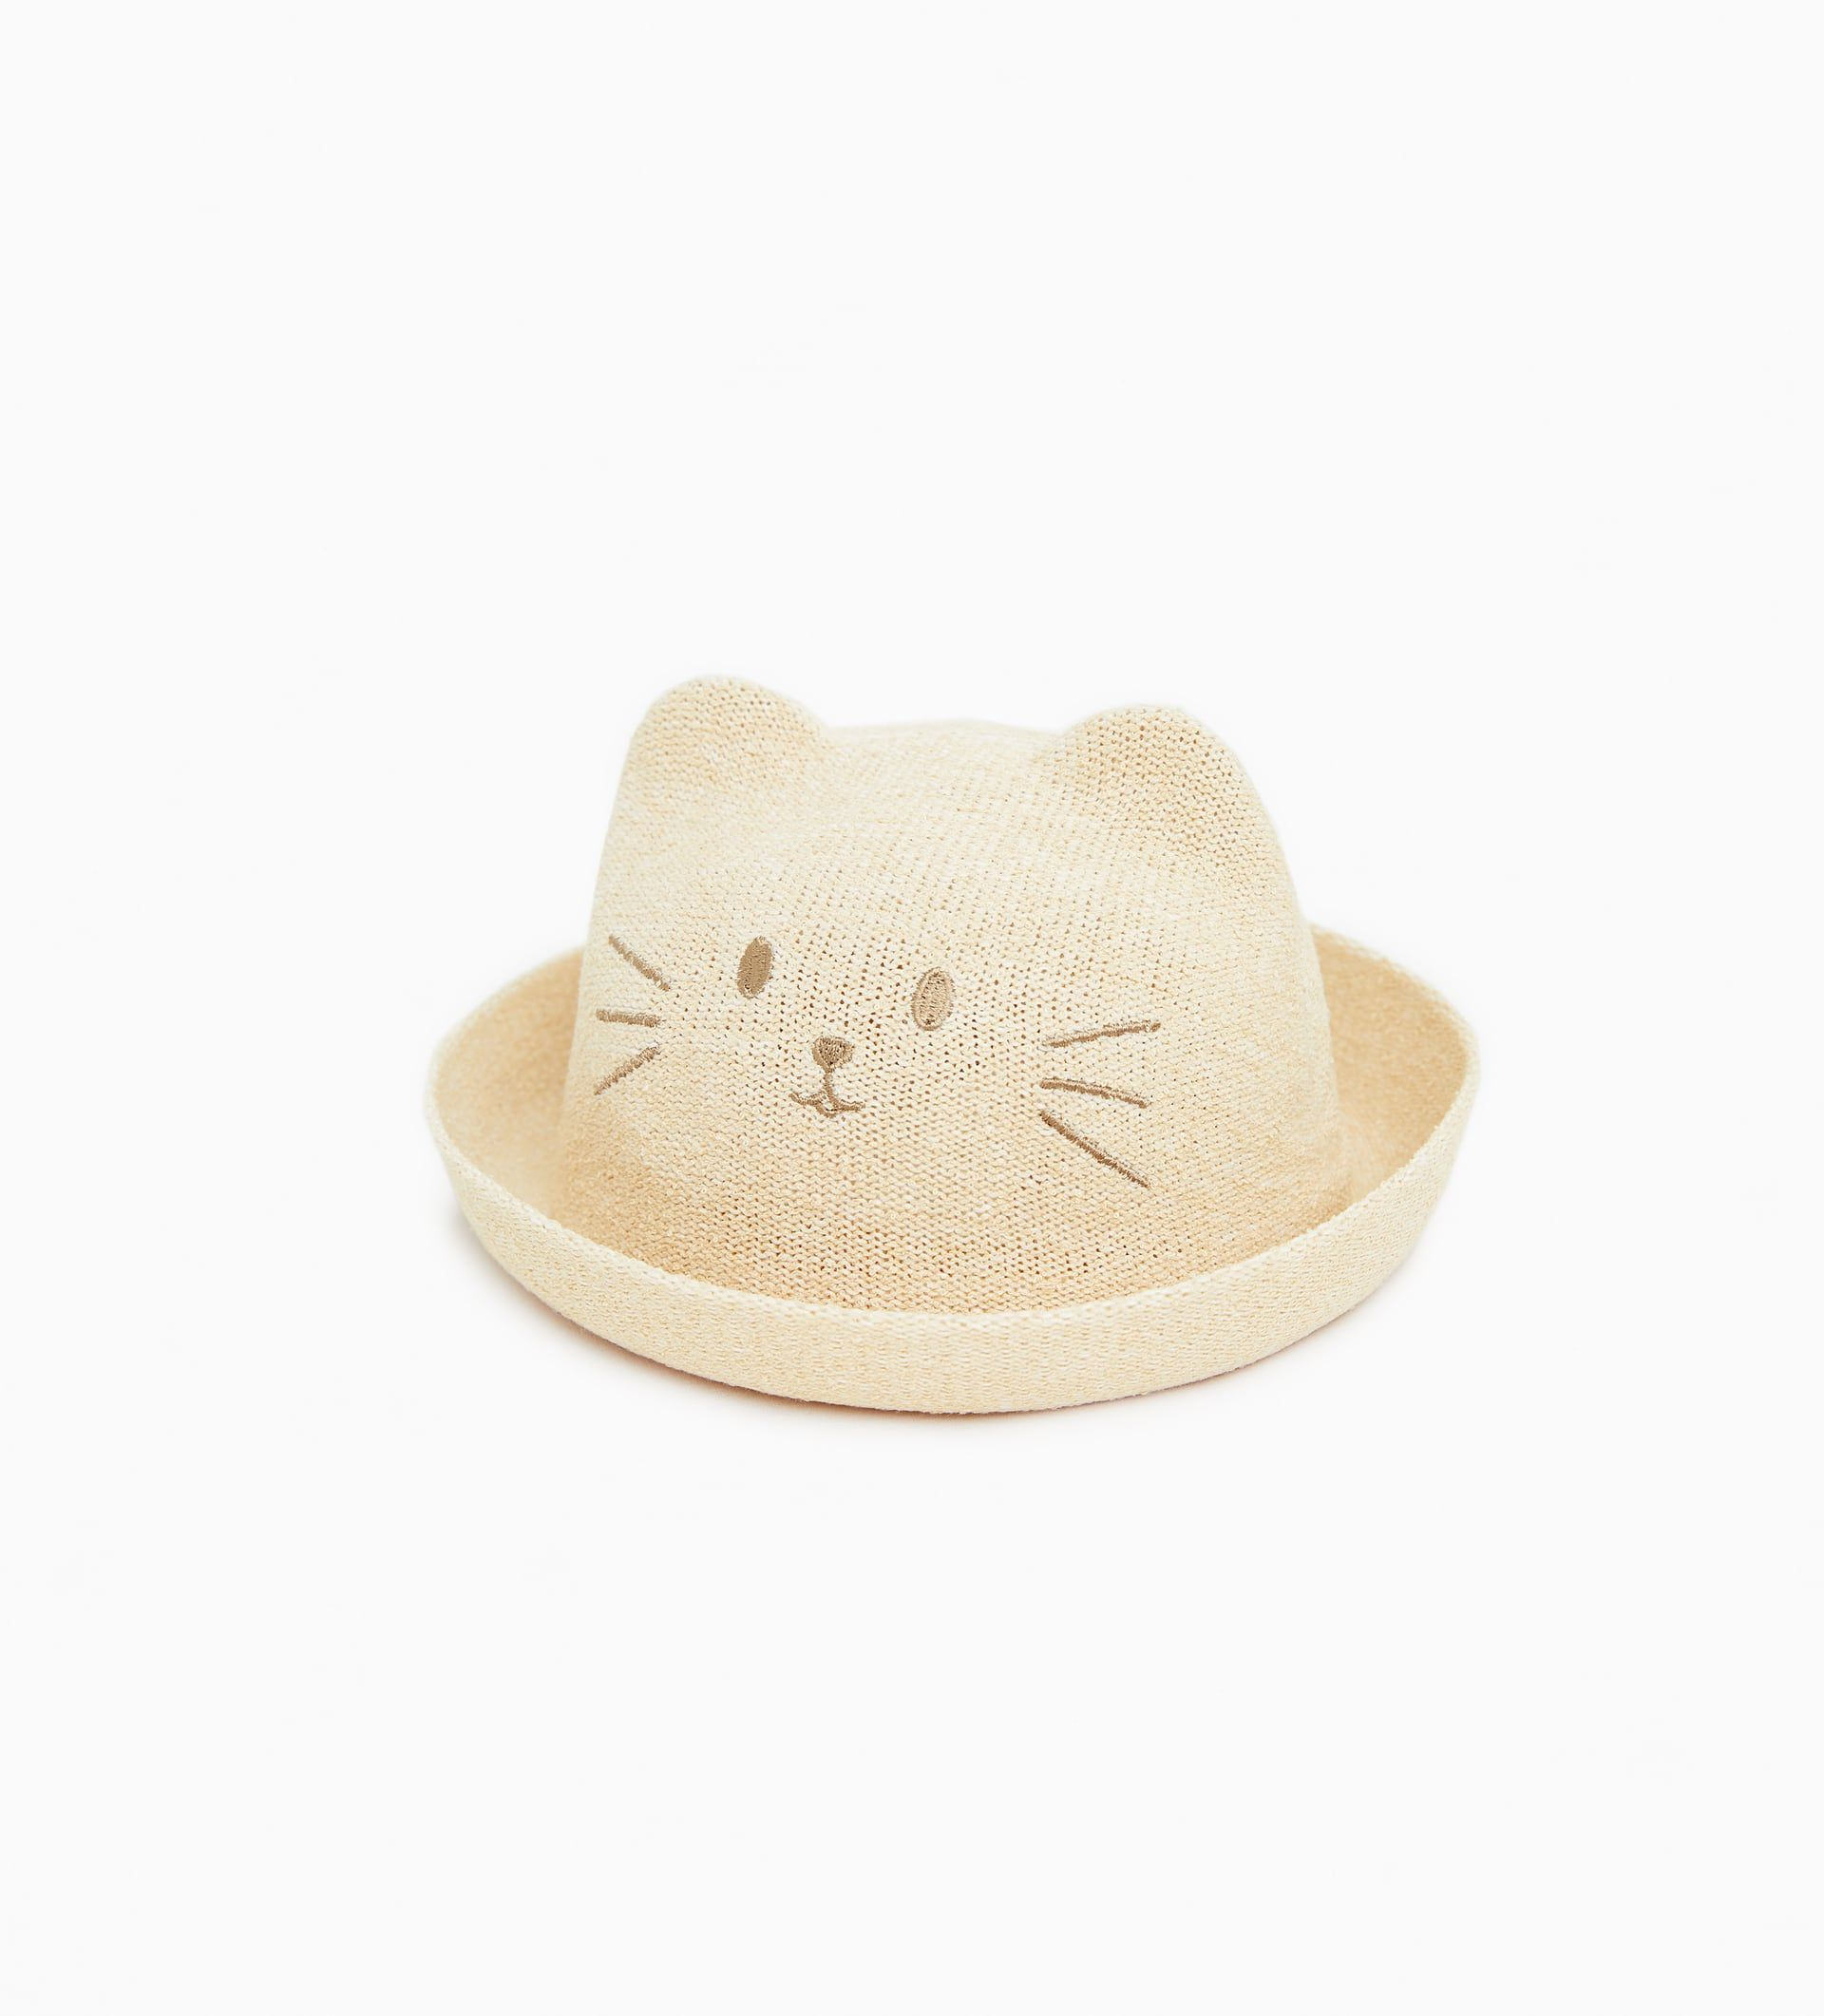 d8e81dab Sparkly straw hat with ears   baby clothes   Ear hats, Hats ...